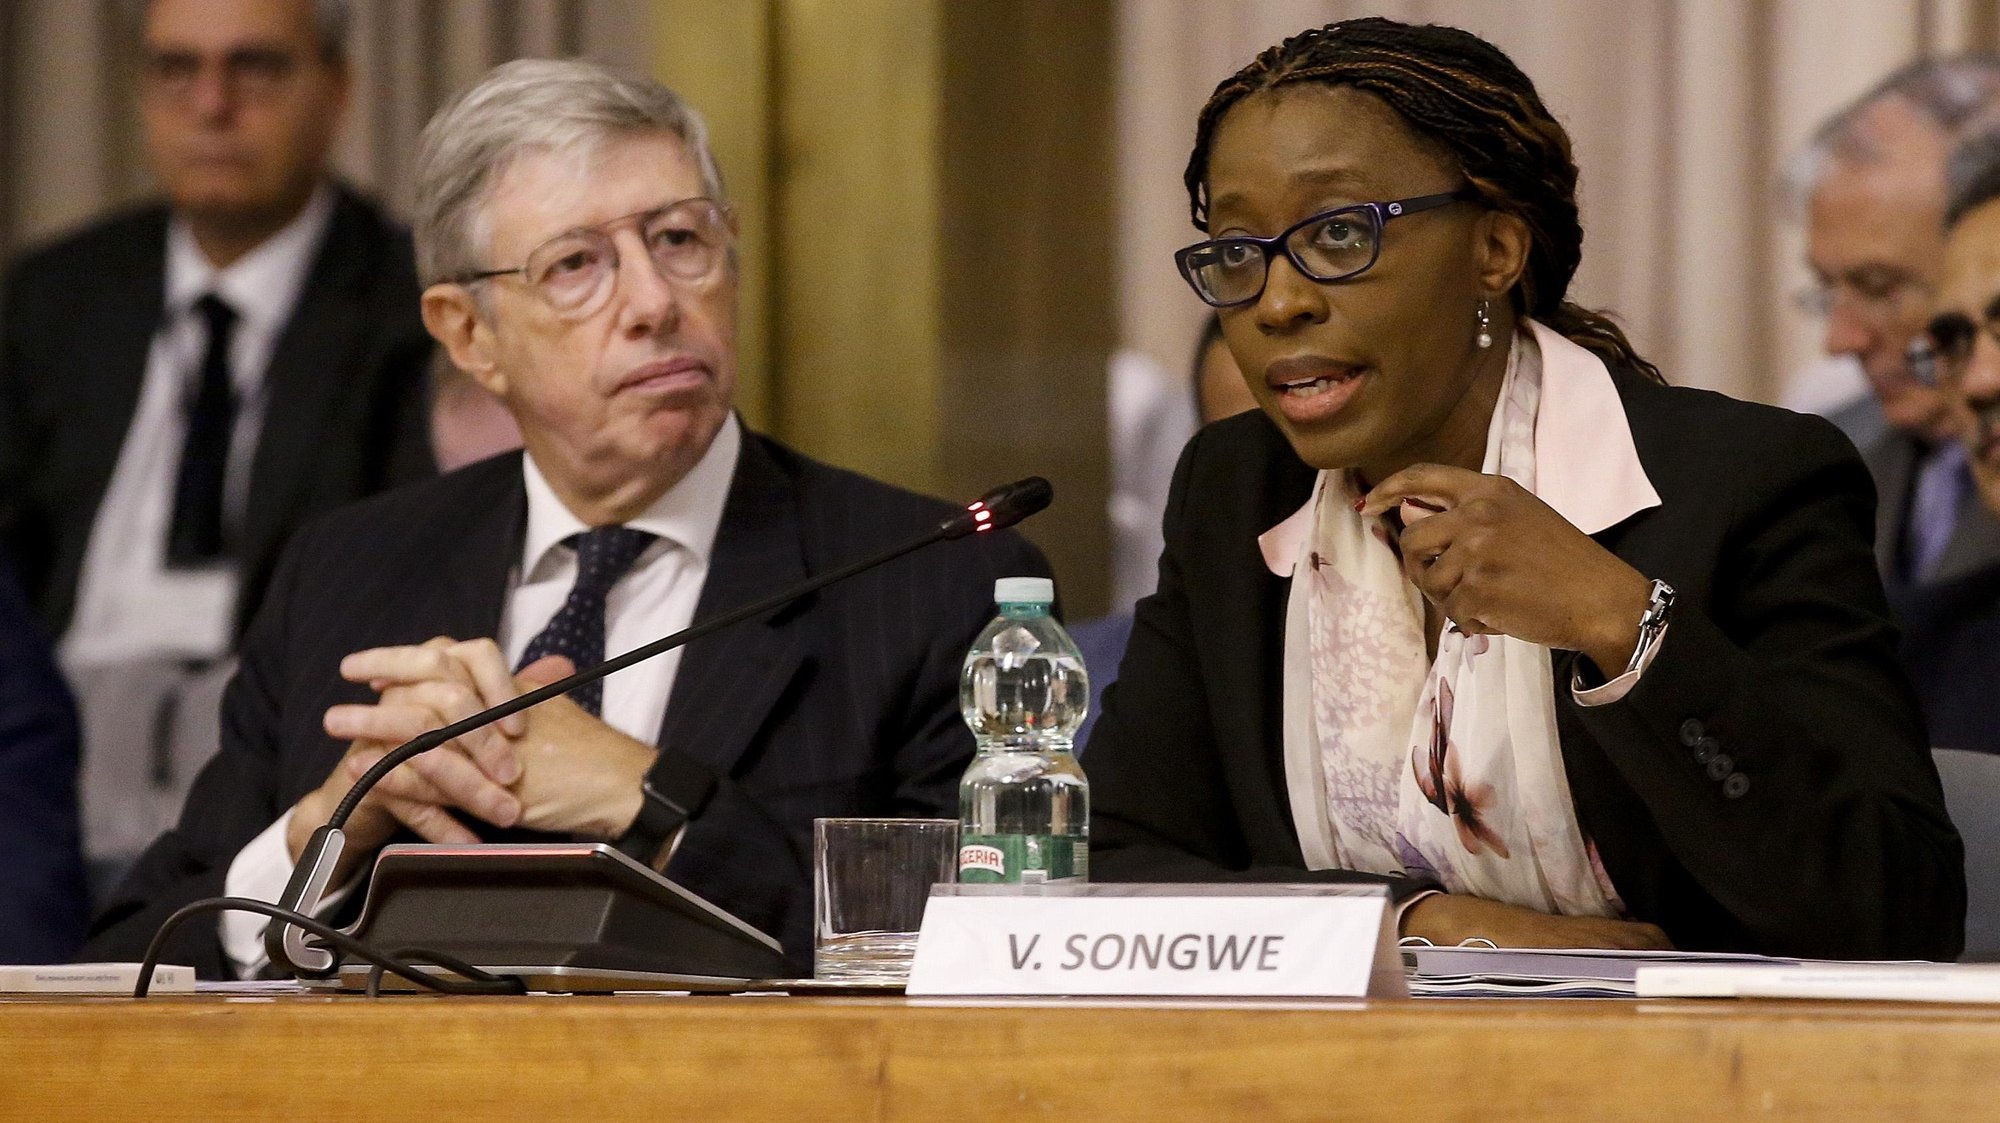 epa07115972 Massimo Gaiani, Director General for Global Issues of Italys Minister for Foreign Affairs and International Cooperation (L) and Vera Songwe, Executive Secretary of the United Nations Economic Commission for Africa, during the conference 'Africa's renewable energy transition: What does it take?'' at Farnesina palace in Rome, Italy, 24 October 2018.  EPA/FABIO FRUSTACI